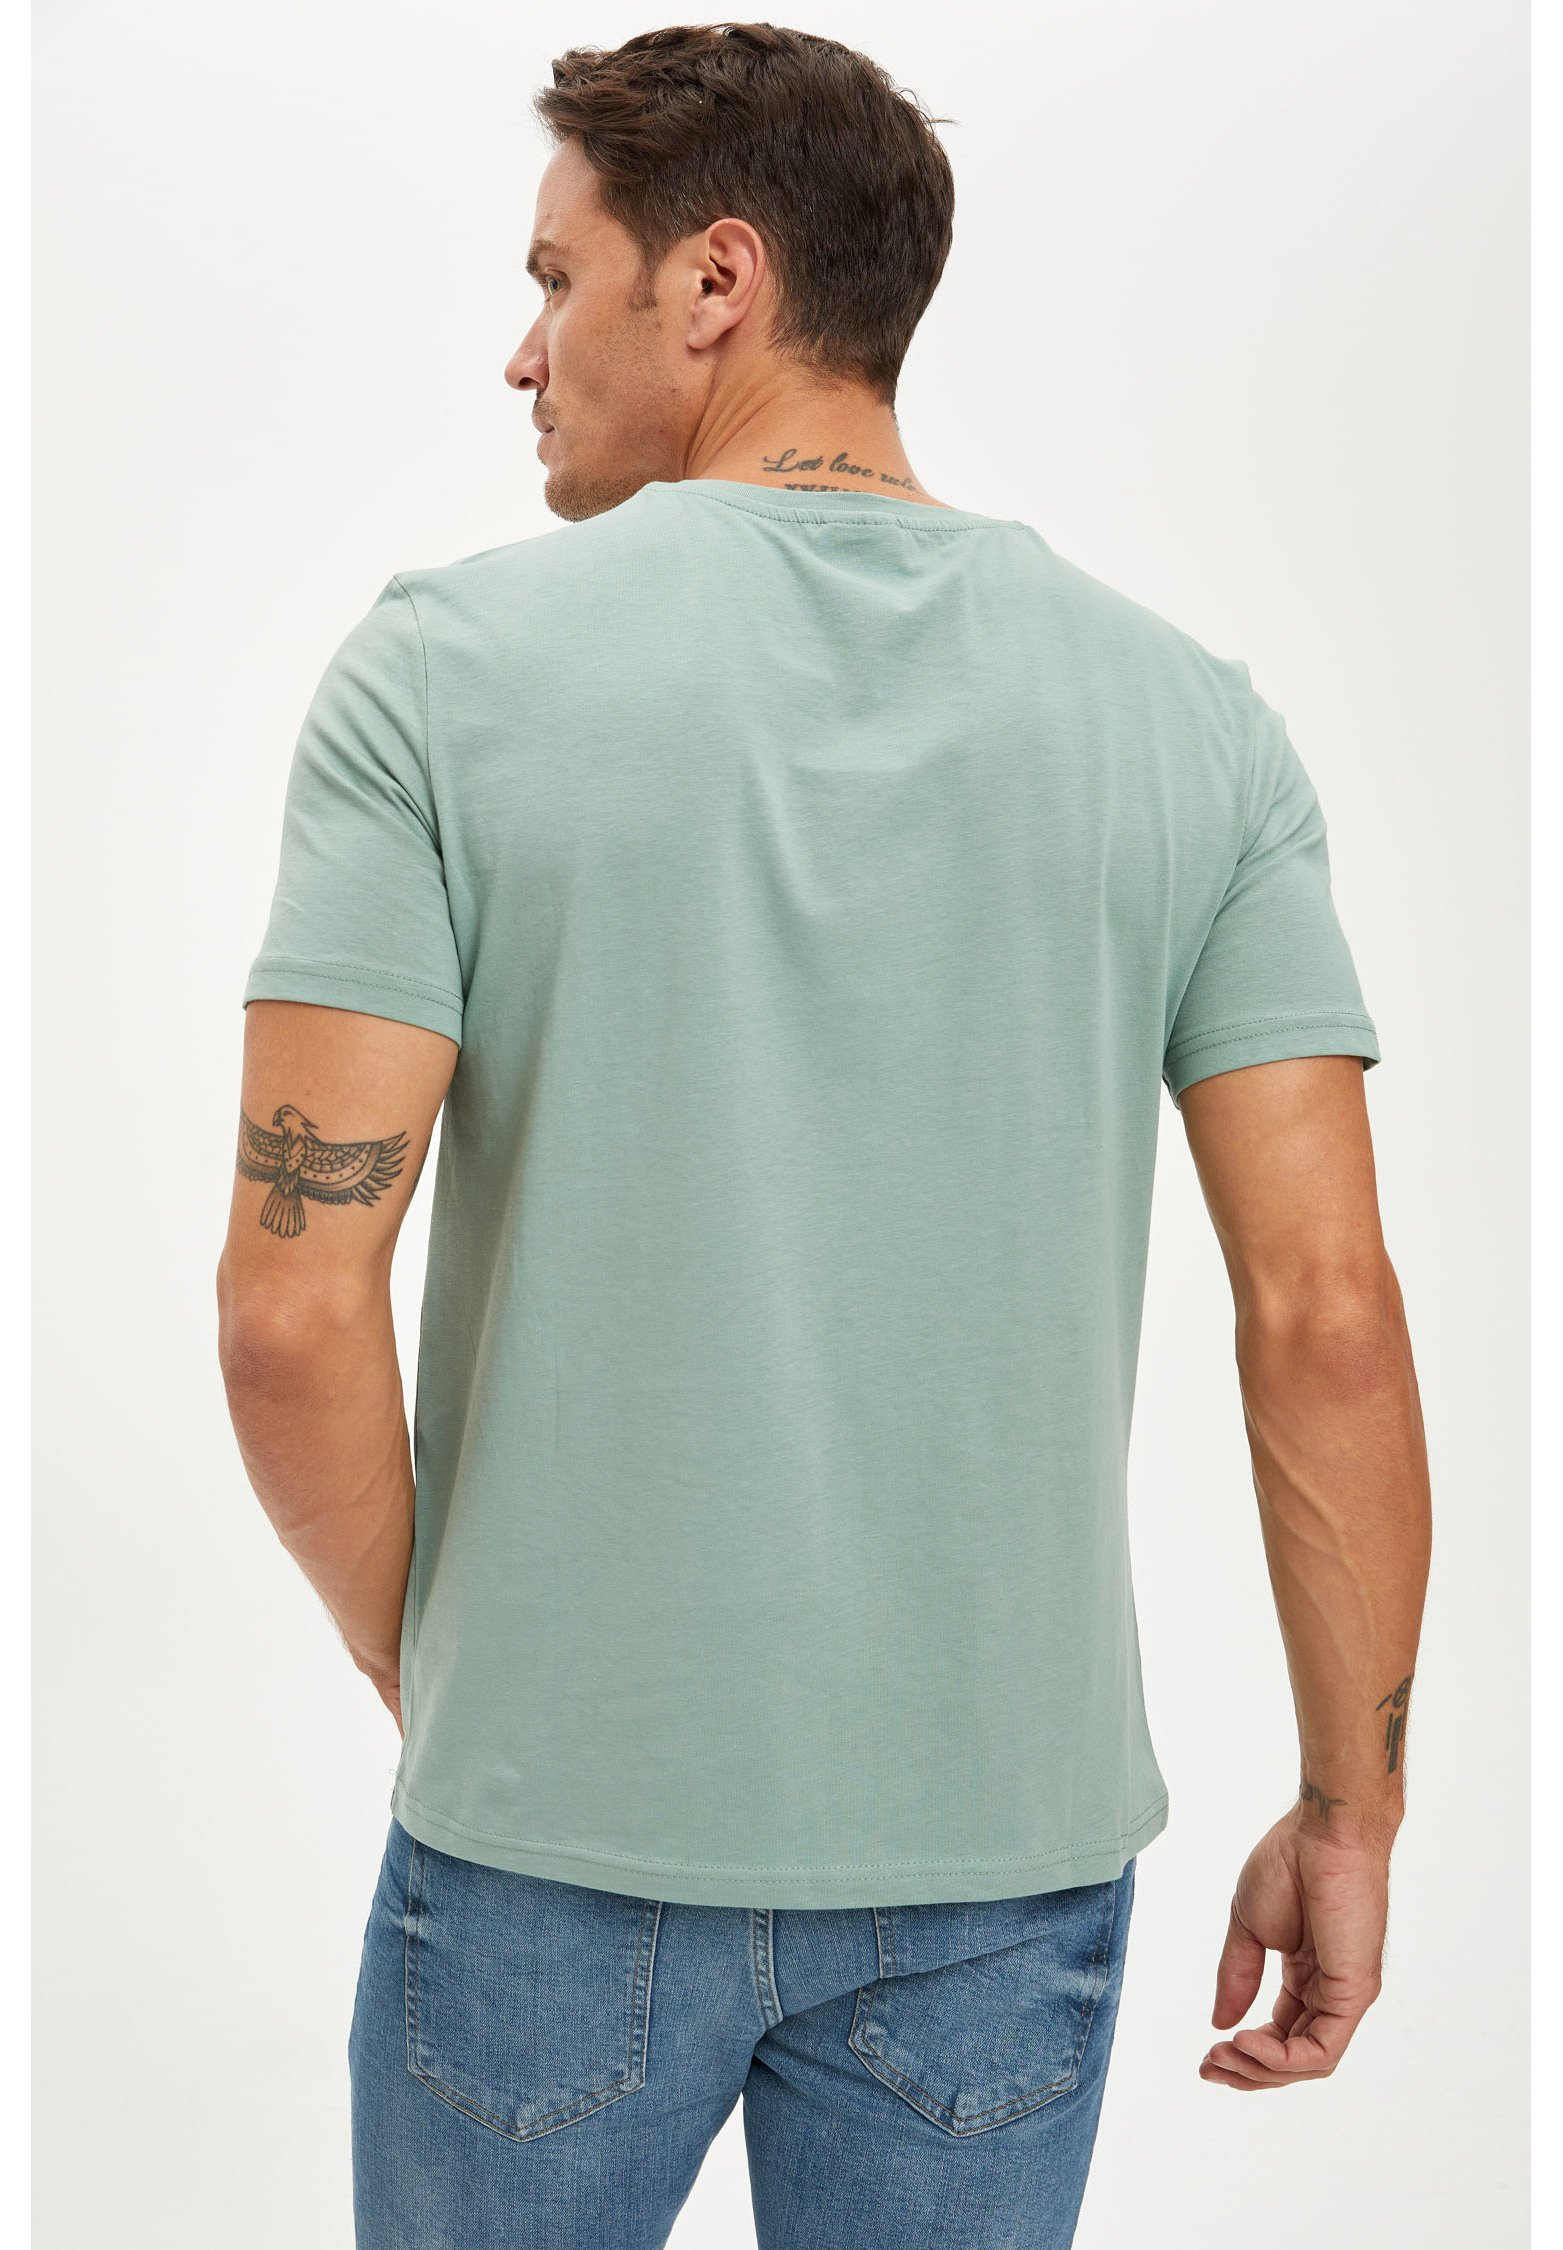 DeFacto Basic T-shirt - turquoise NDfZb